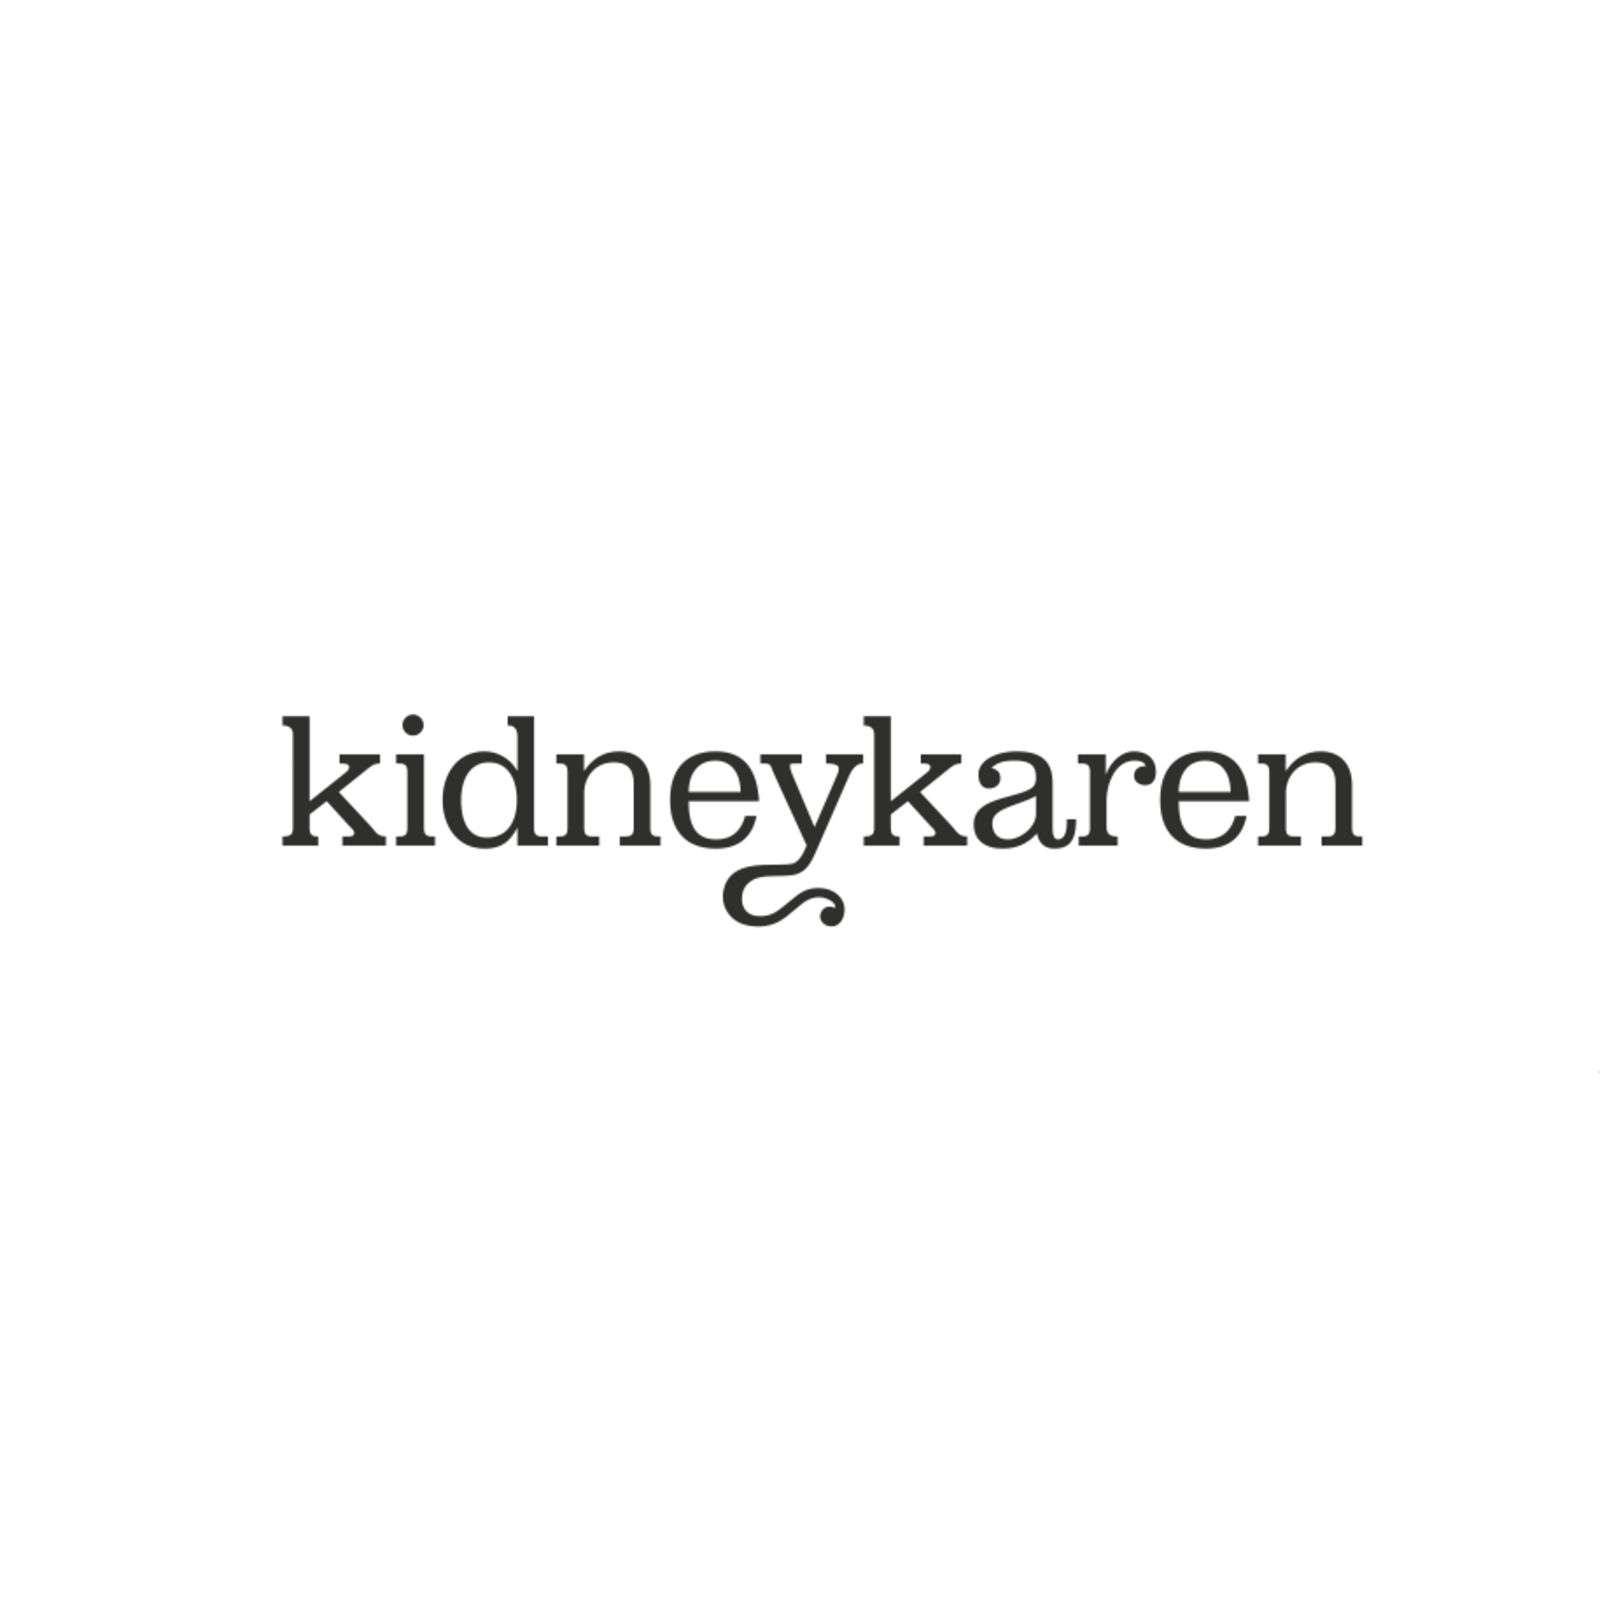 kidneykaren